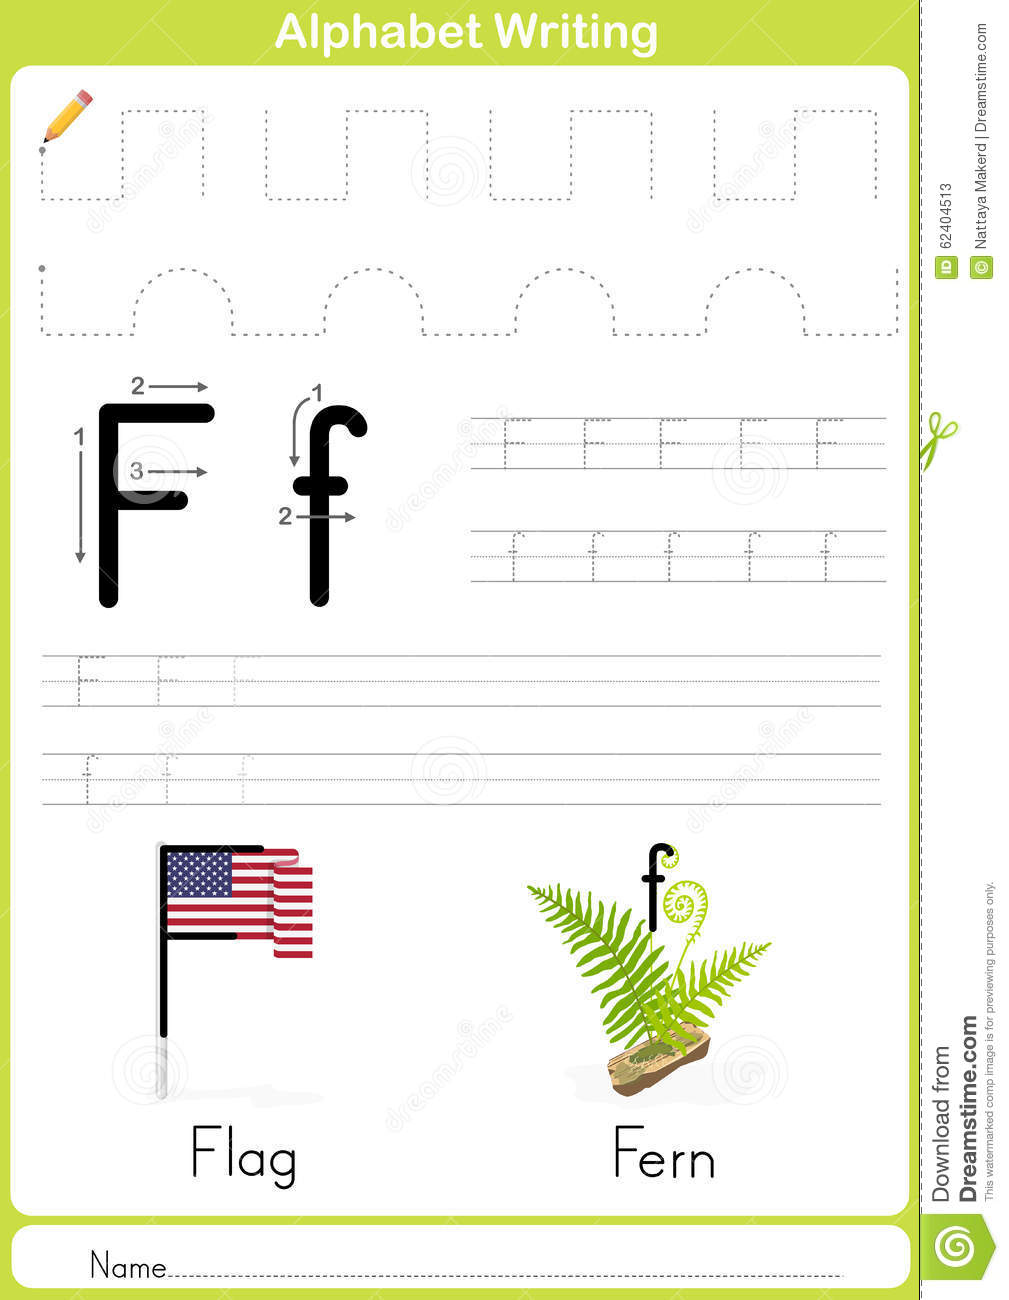 Alphabet A-Z Tracing Worksheet, Exercises for kids - A4 paper ready to ...